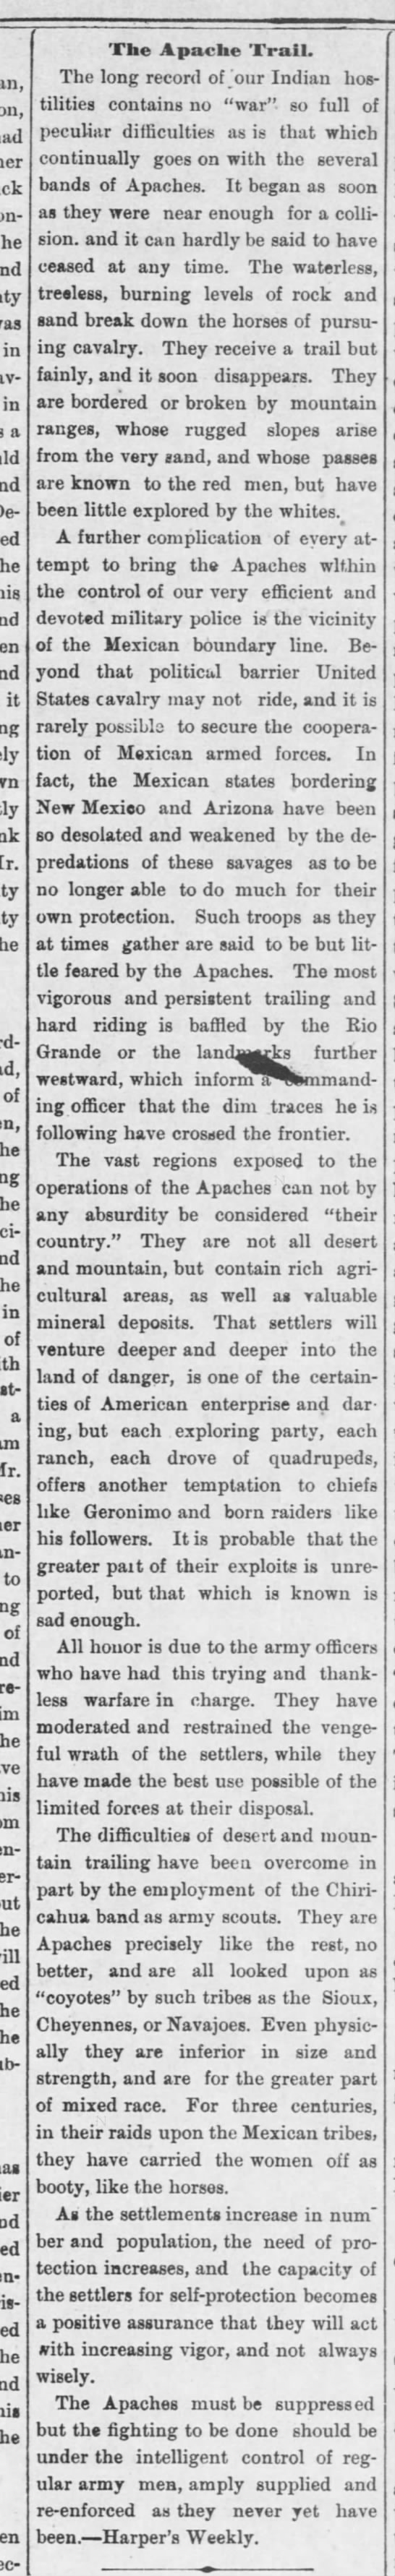 1886 summary of the difficulties the US Army faced in fighting the Apache -